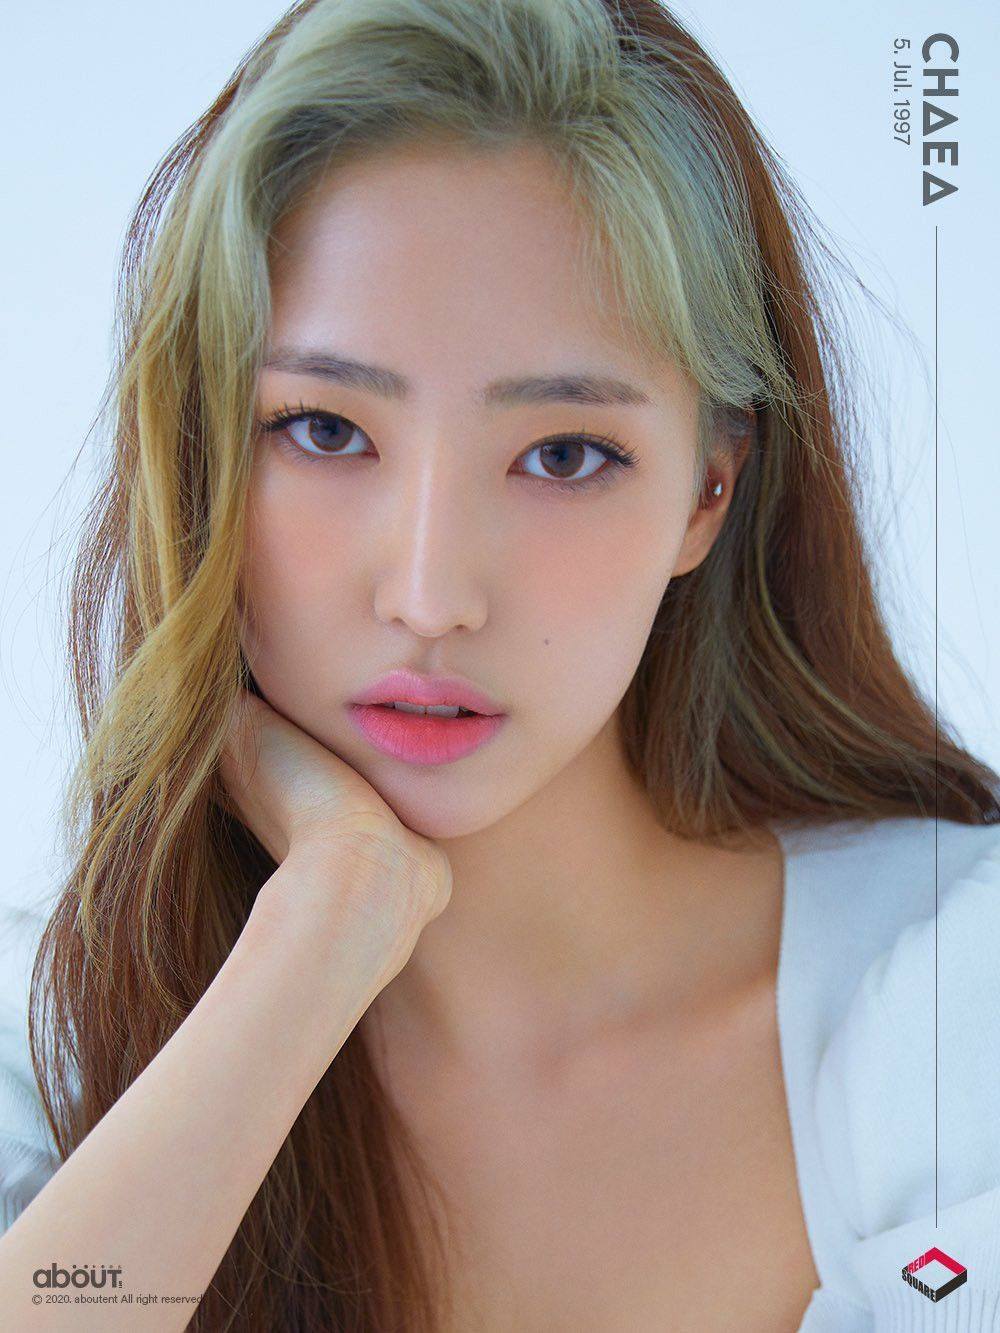 Redsquare Chaea Girl Group Beautiful Person Girl